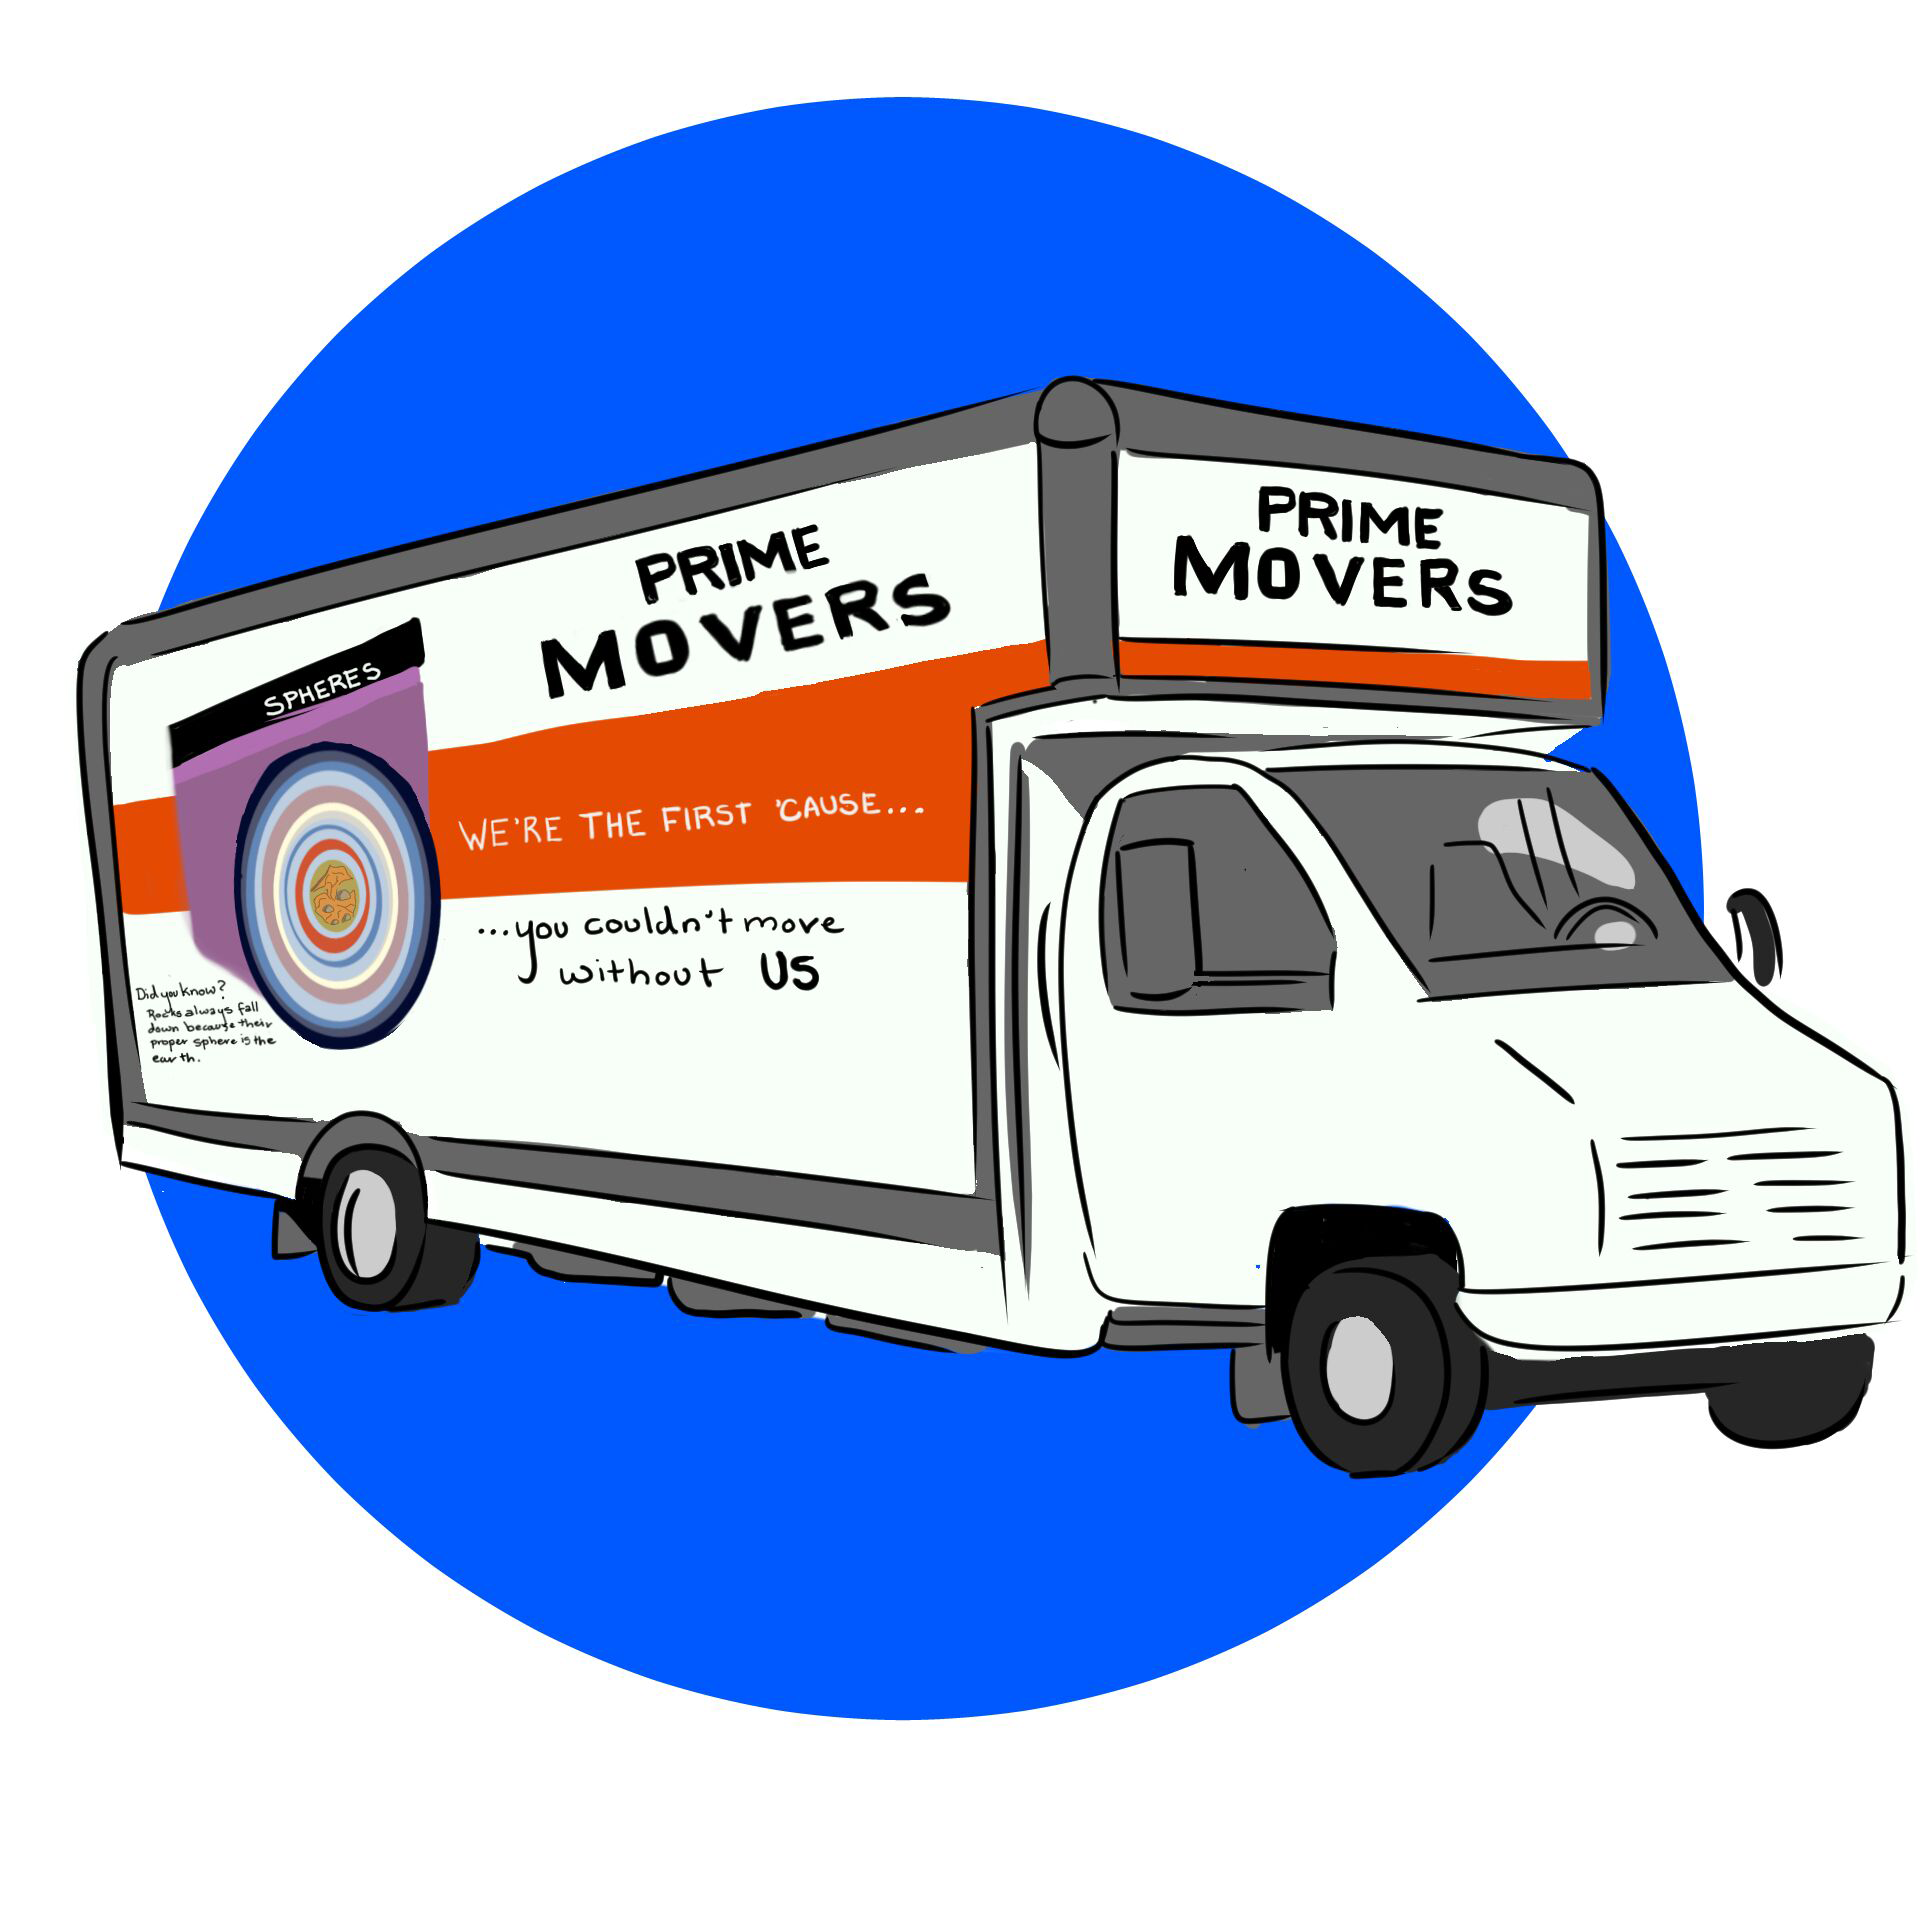 Katler - 2015-12-10 - movers